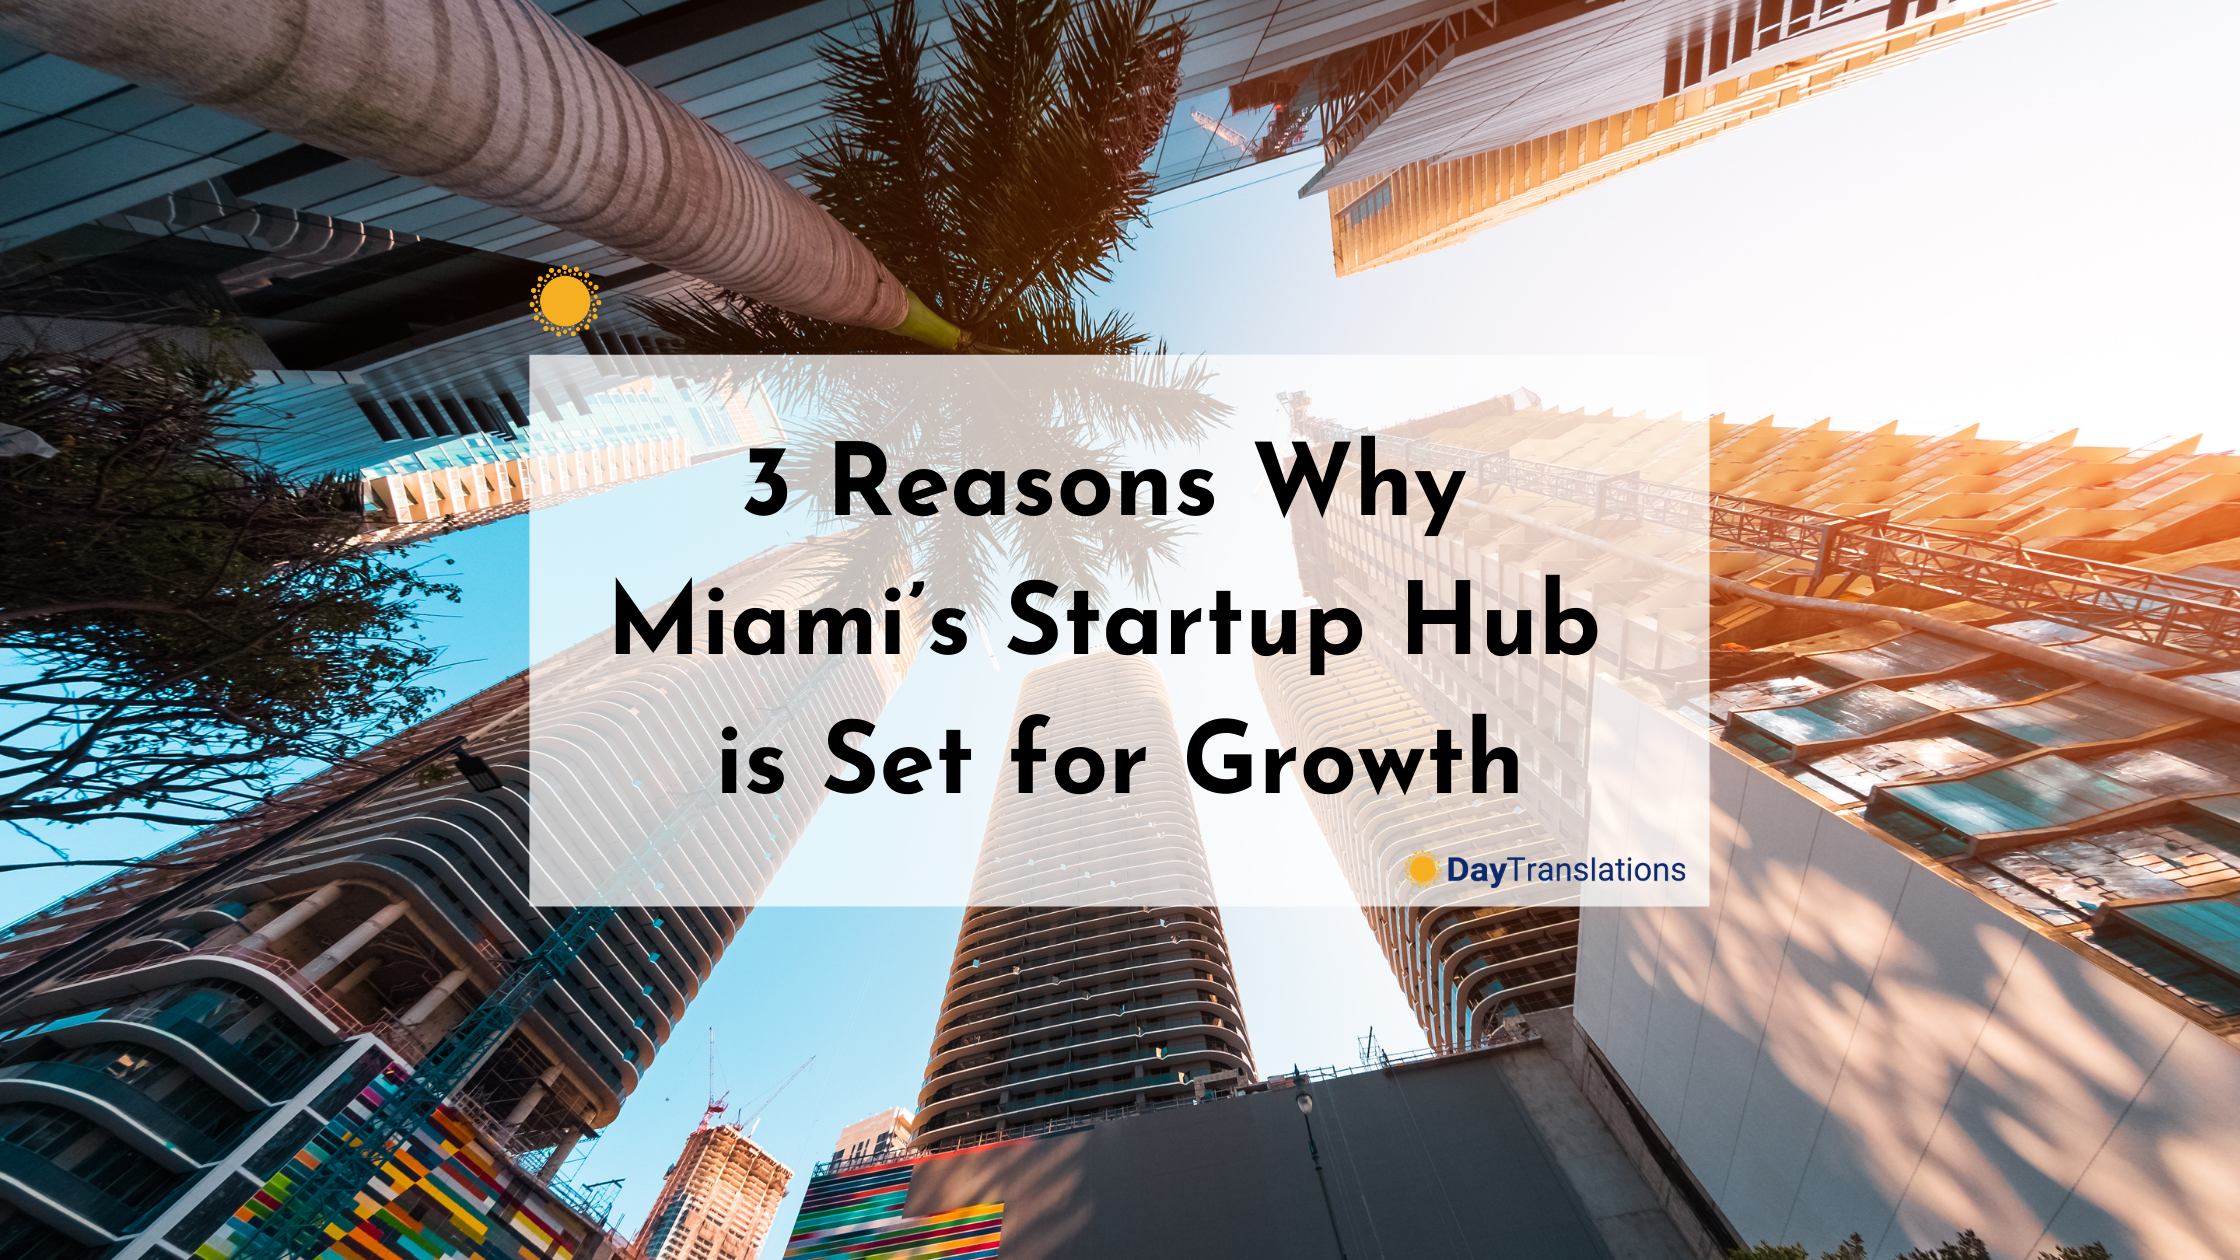 3 Reasons Why Miami's Startup Hub is Set for Growth